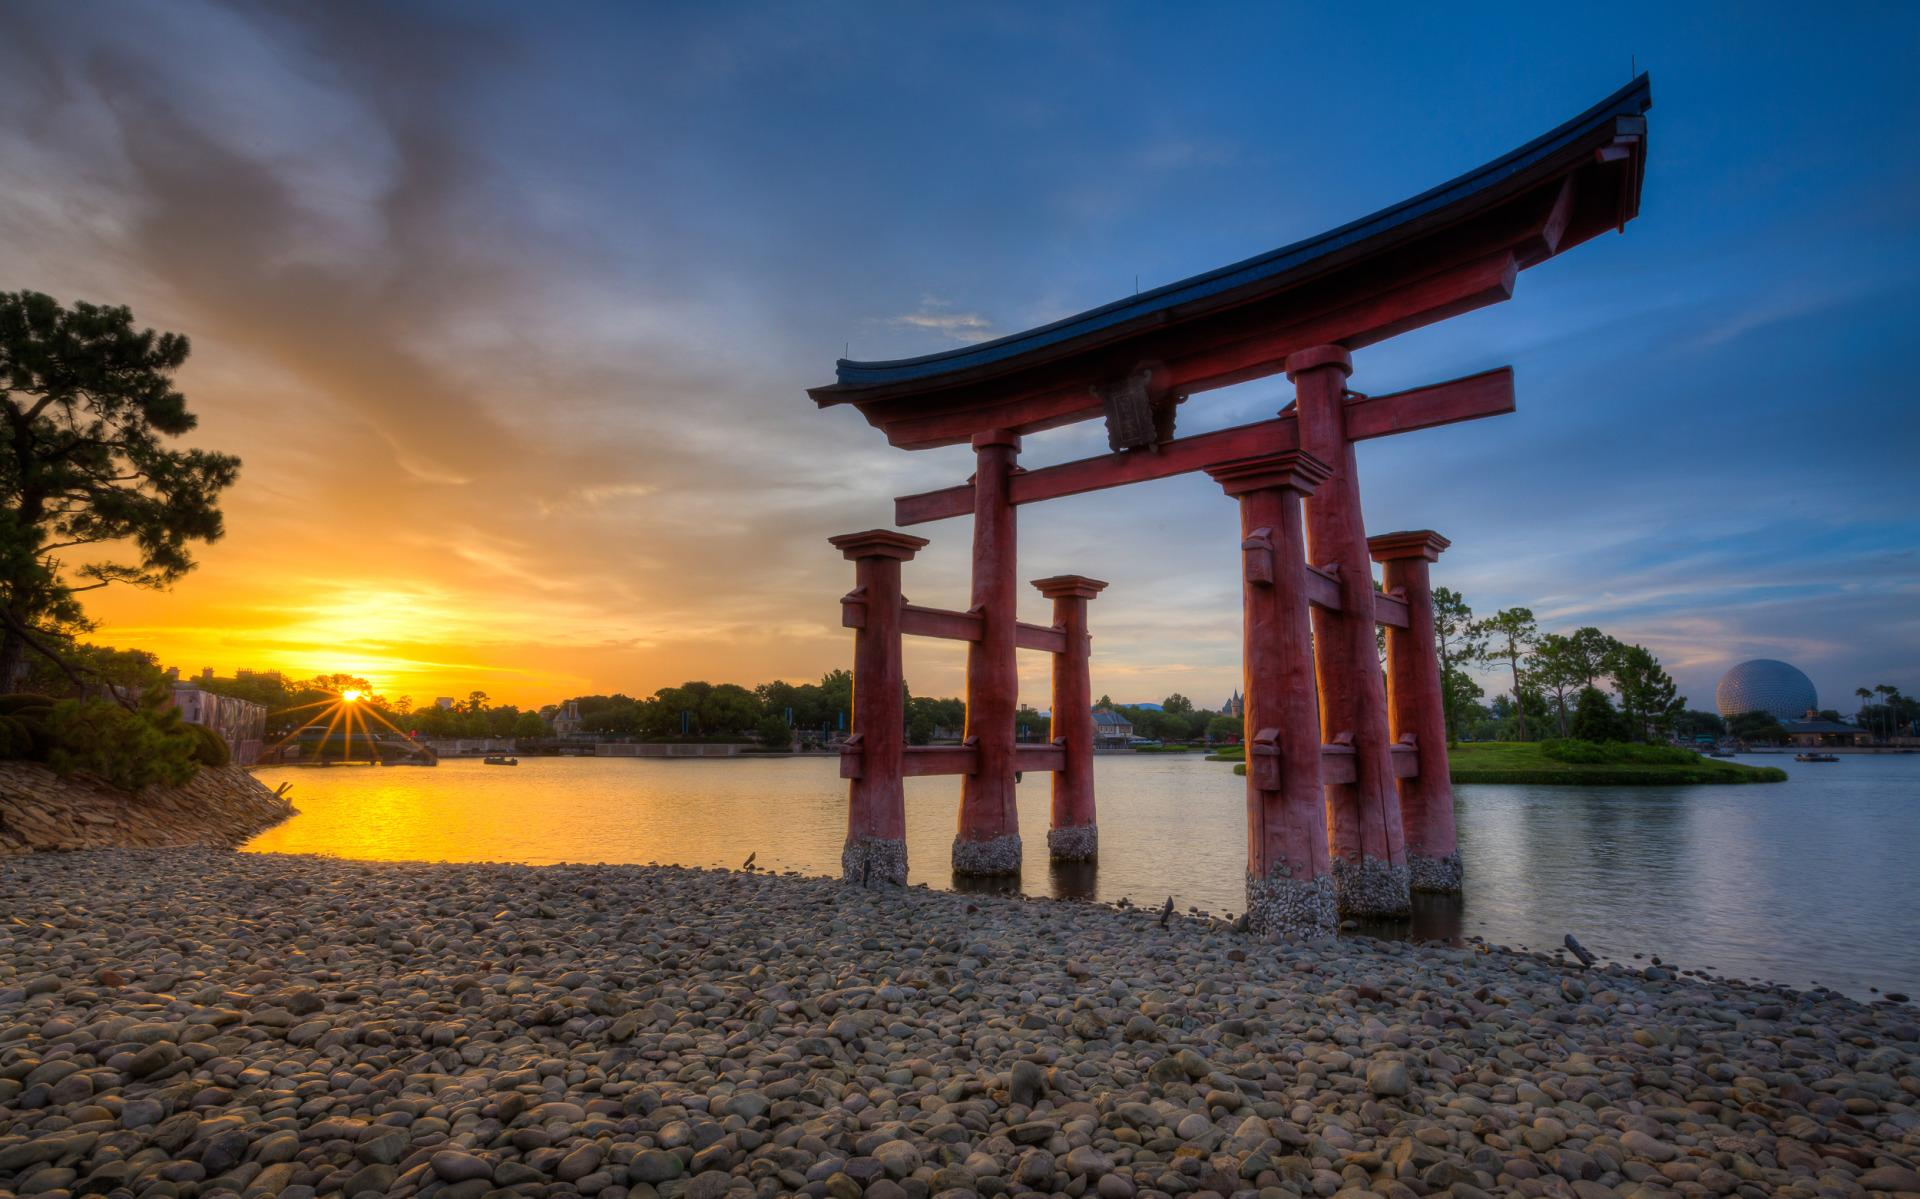 The Torii Gate at the Epcot Japan Pavilion, Walt Disney World